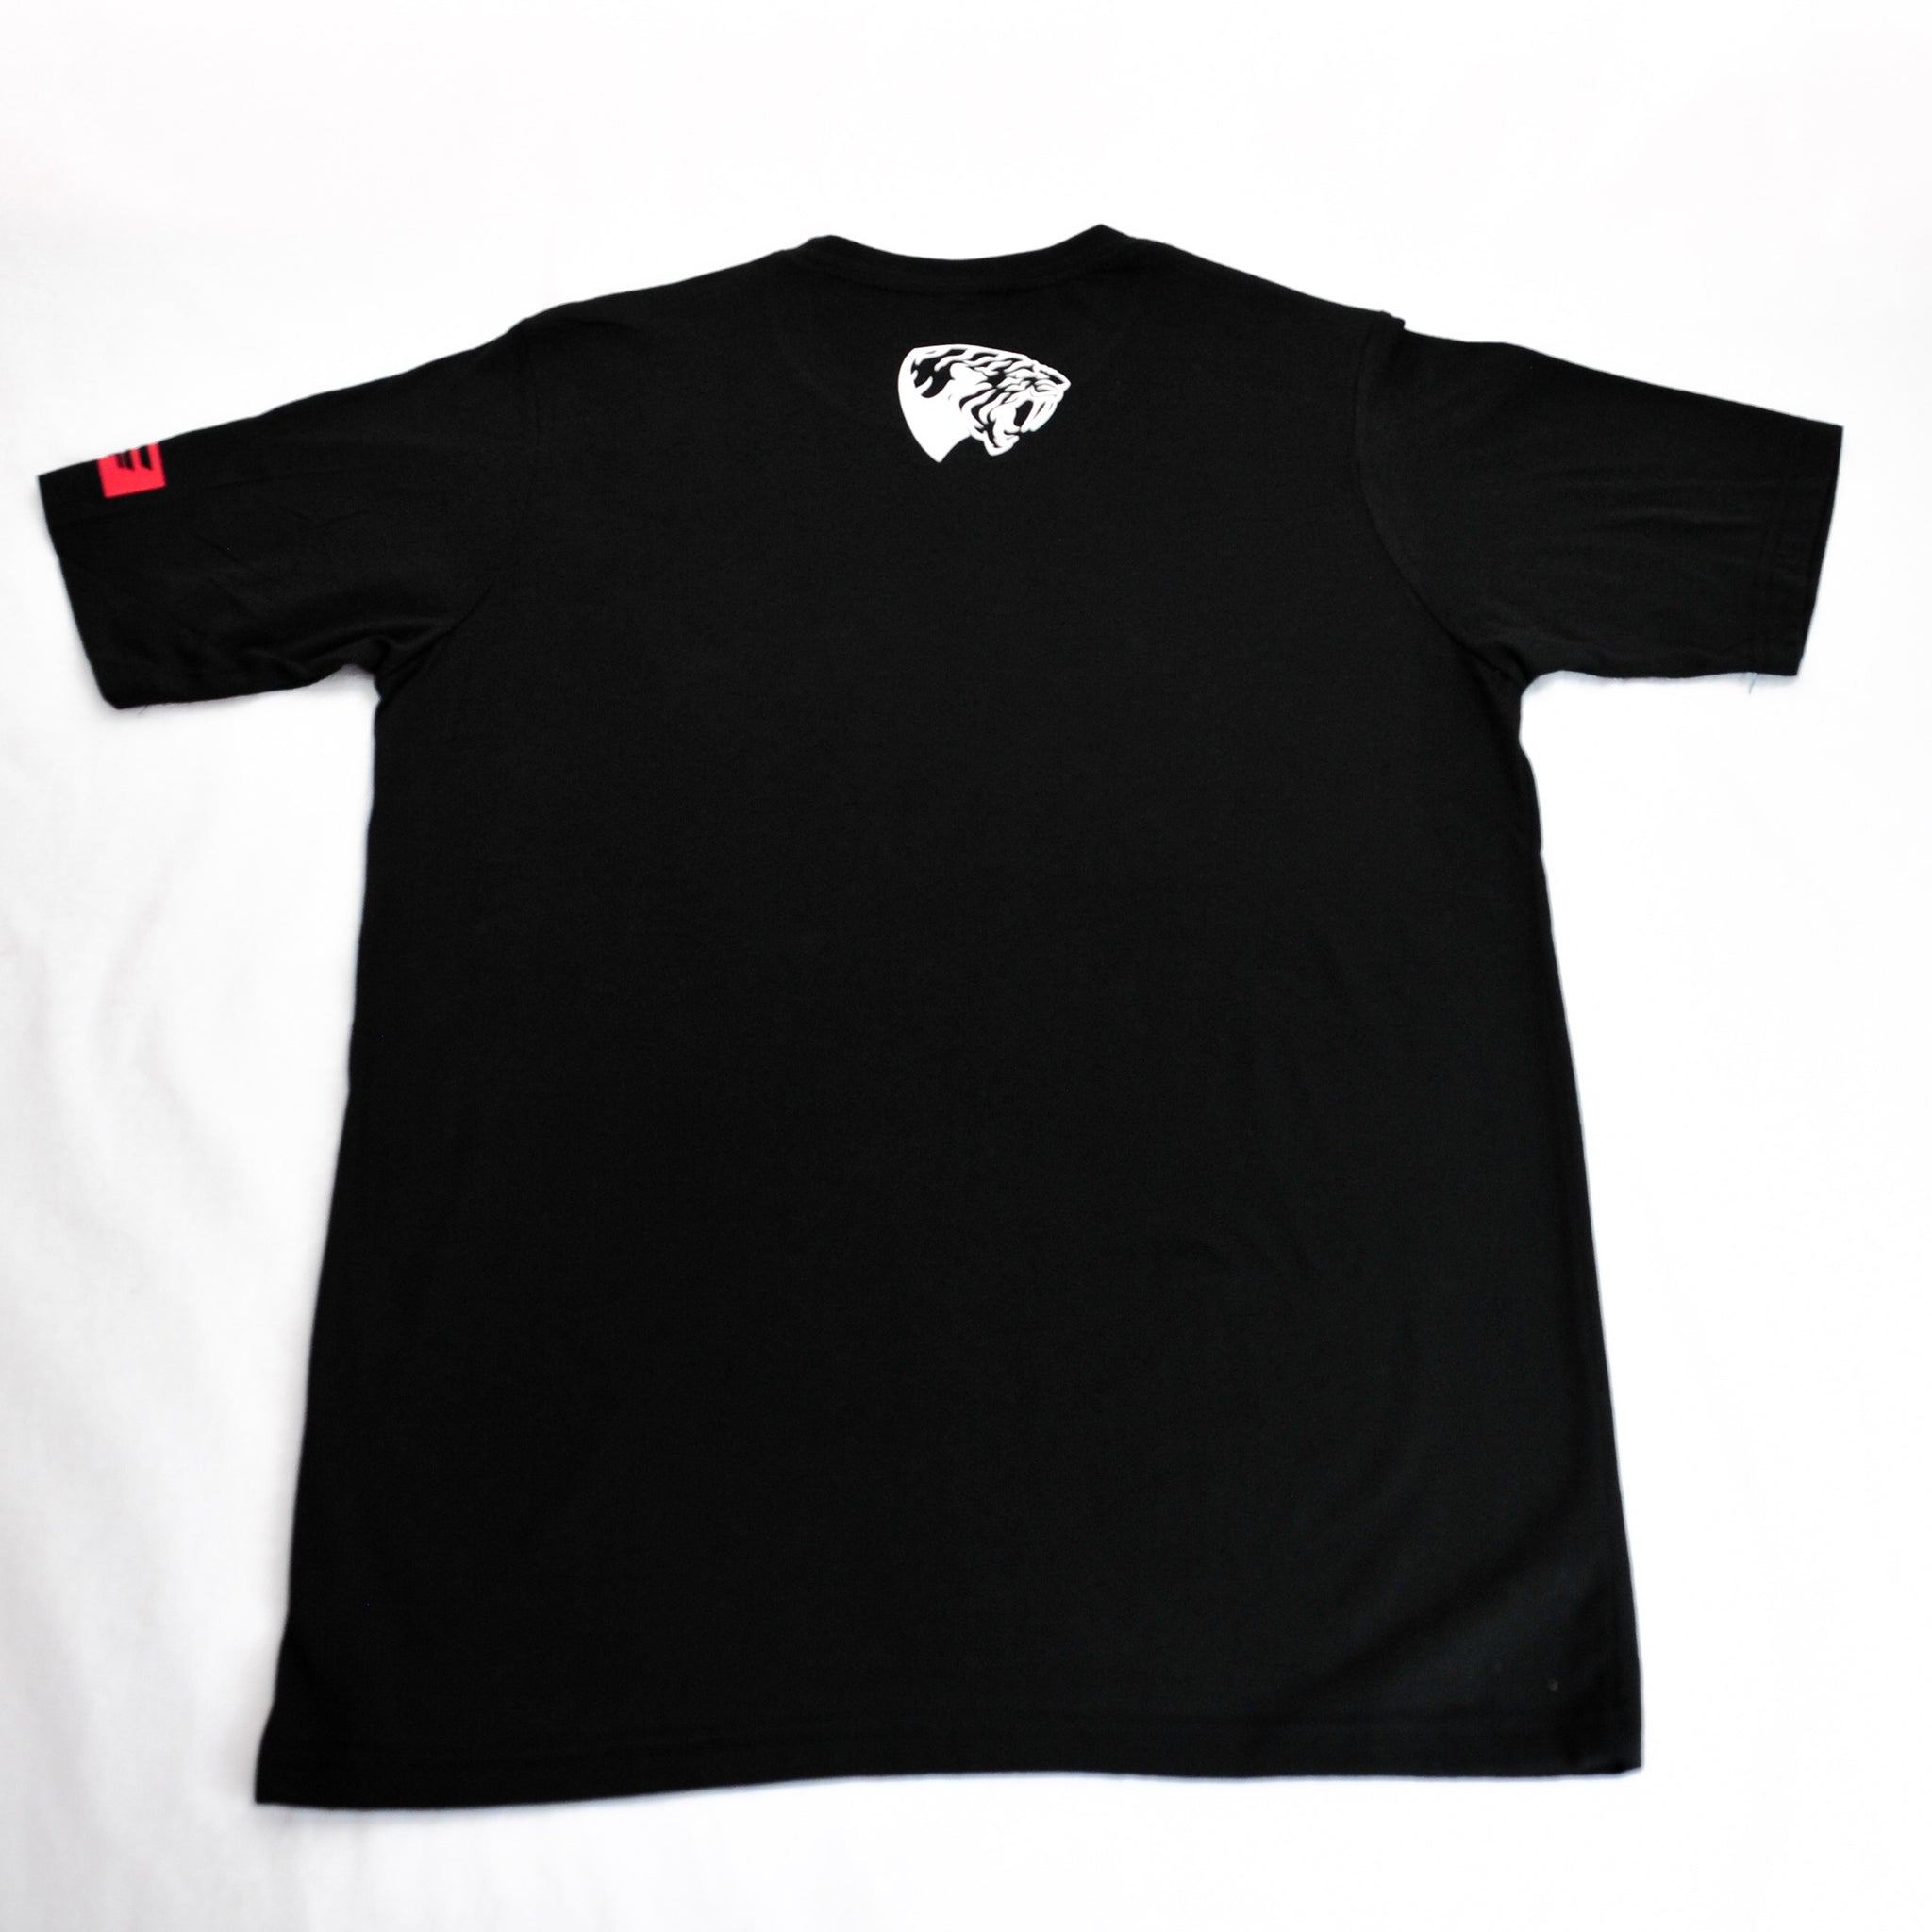 StayFocused Signature Tee